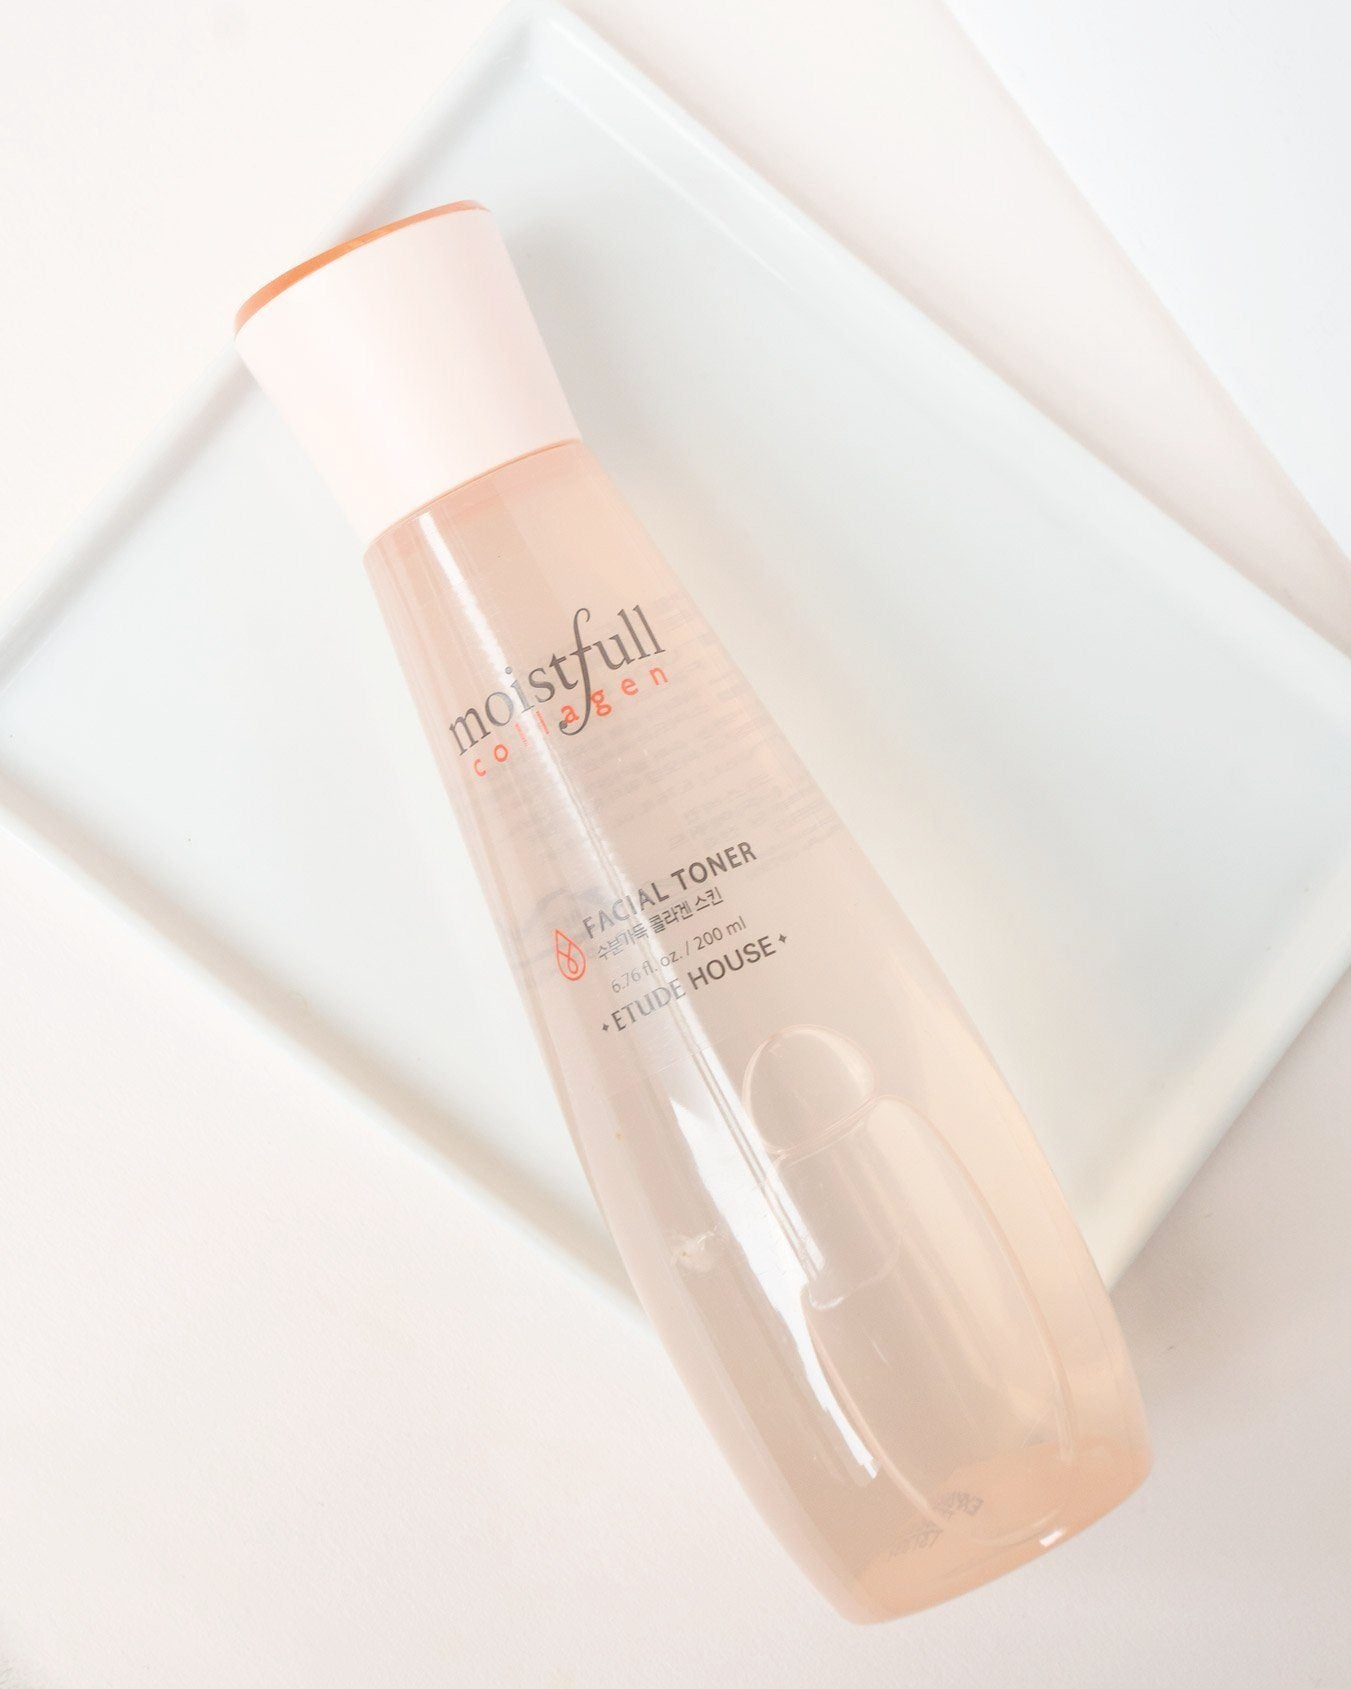 Etude House Moistfull Collagen Facial Toner, skincare, skin care